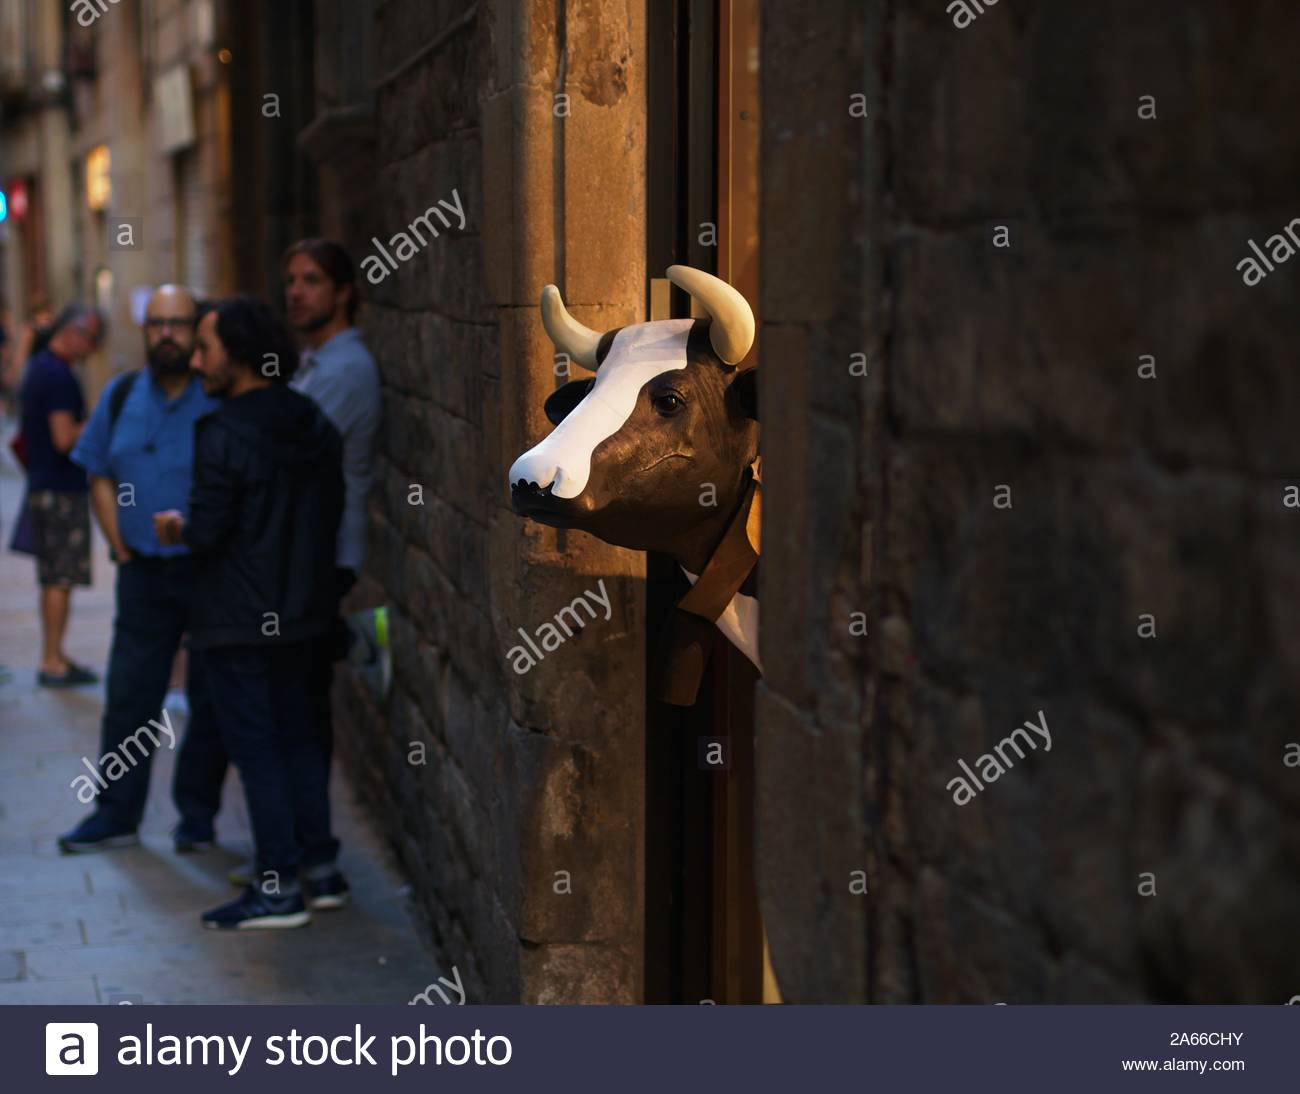 cow-looking-out-from-shop-2A66CHY.jpg